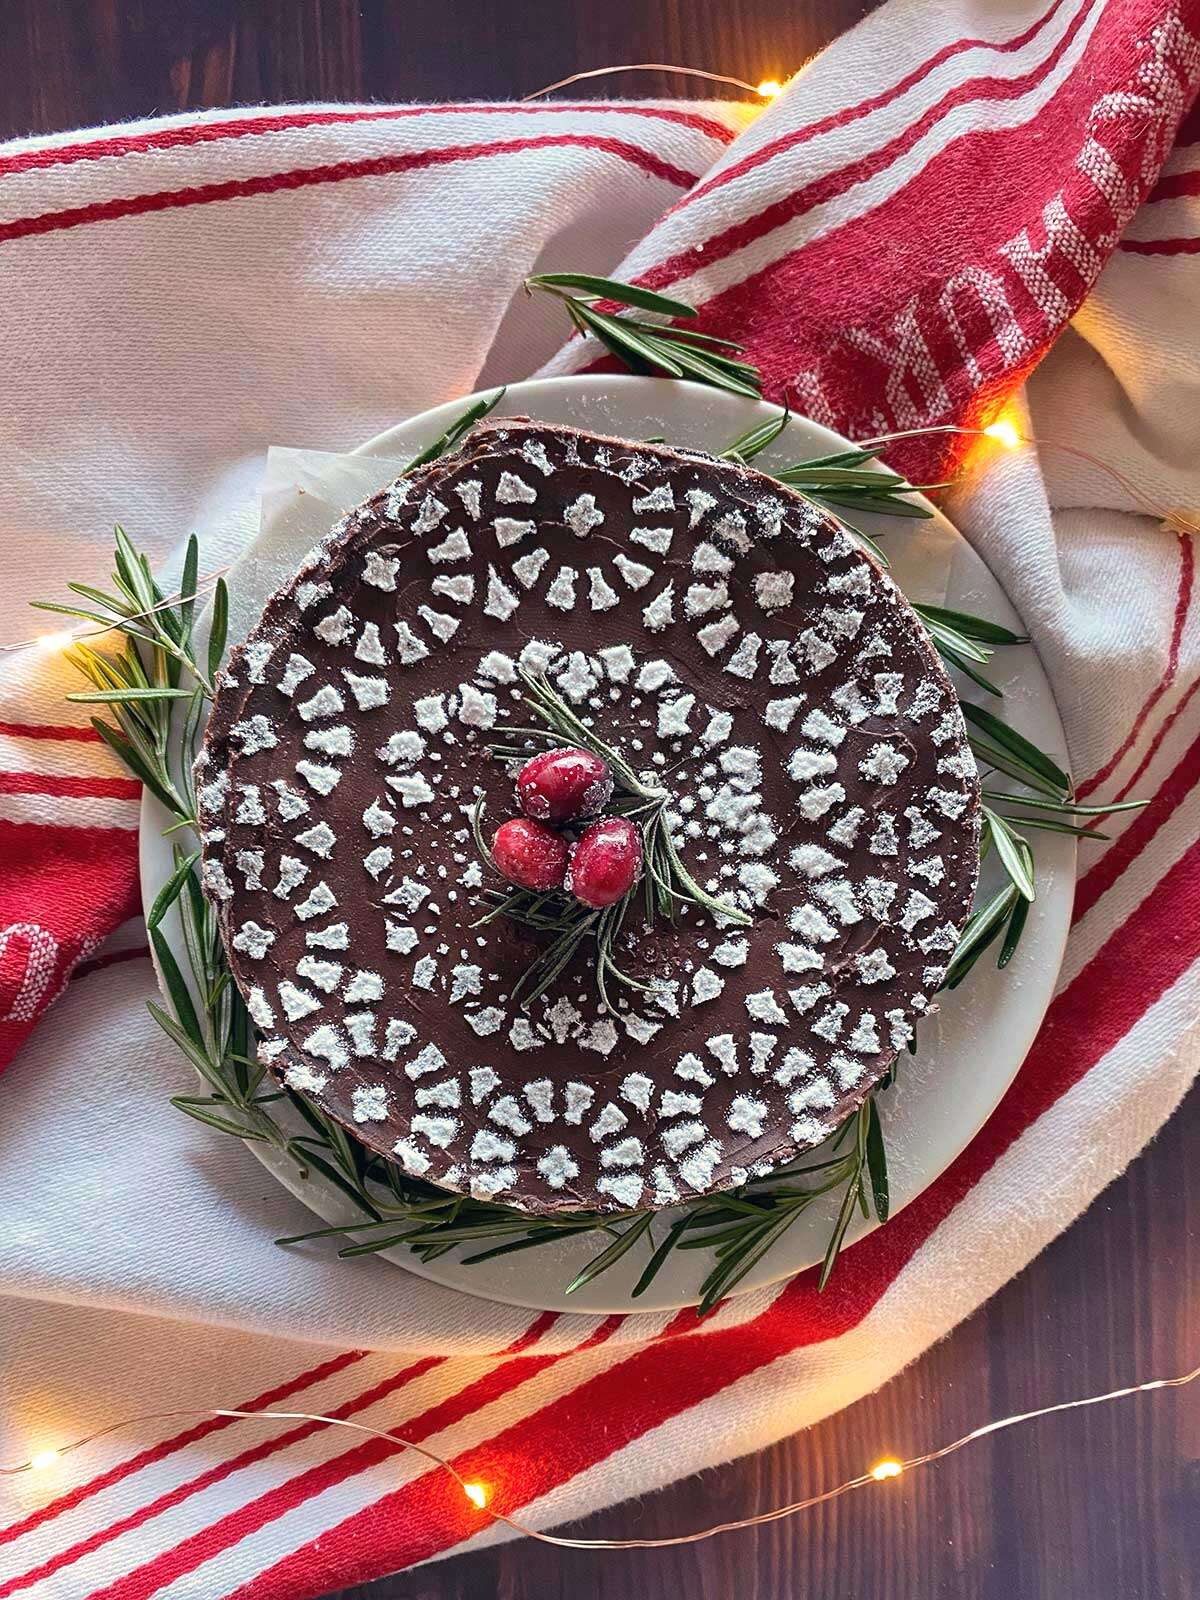 A flourless chocolate cake dressed up with a stenciled design on top and sugared cranberries for garnish